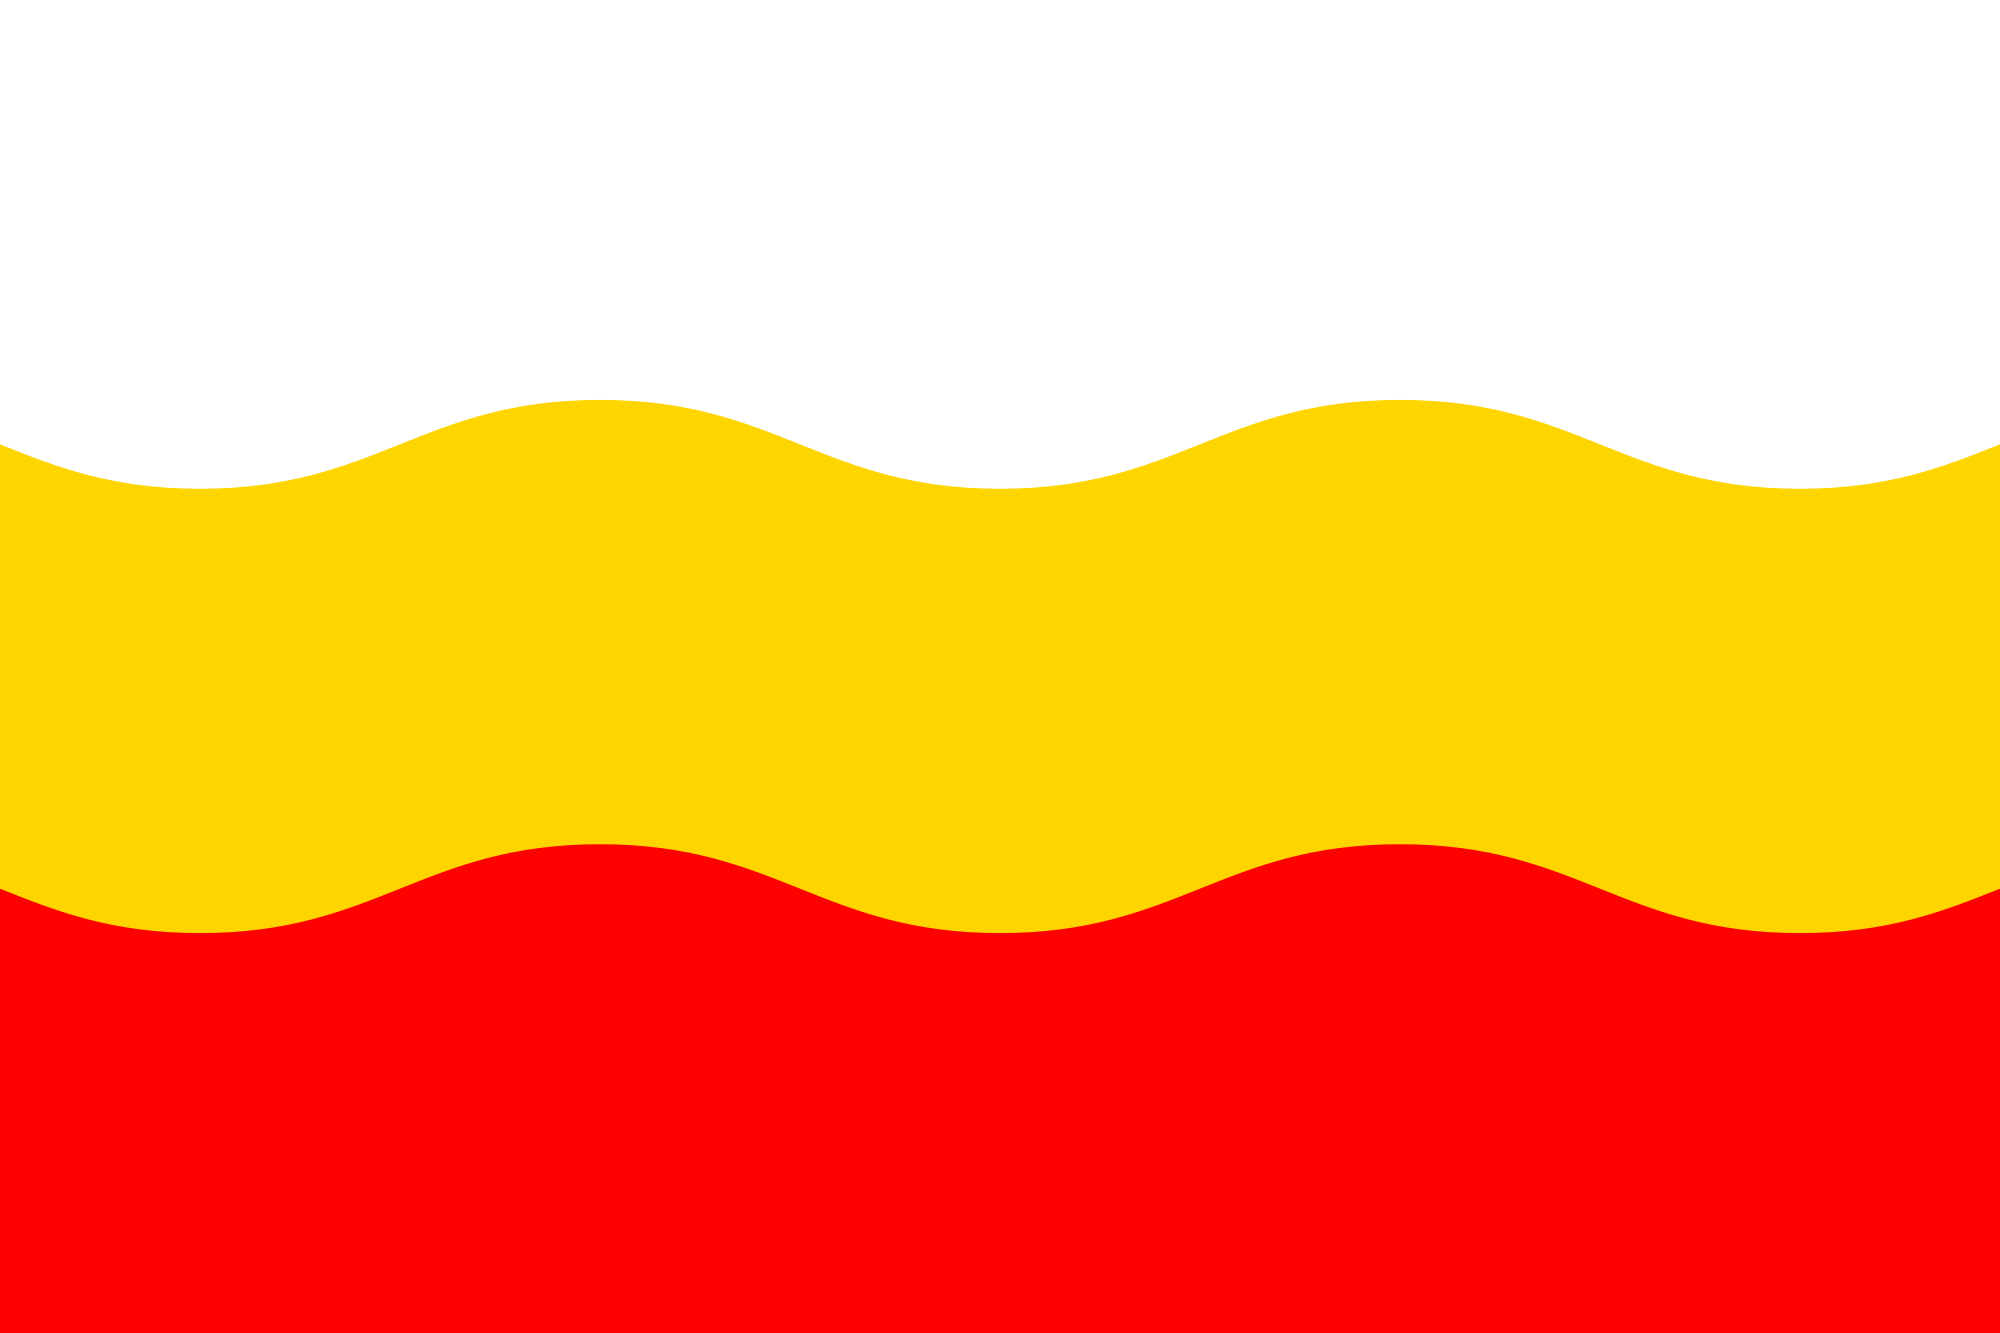 File:Flag of Decin.svg.